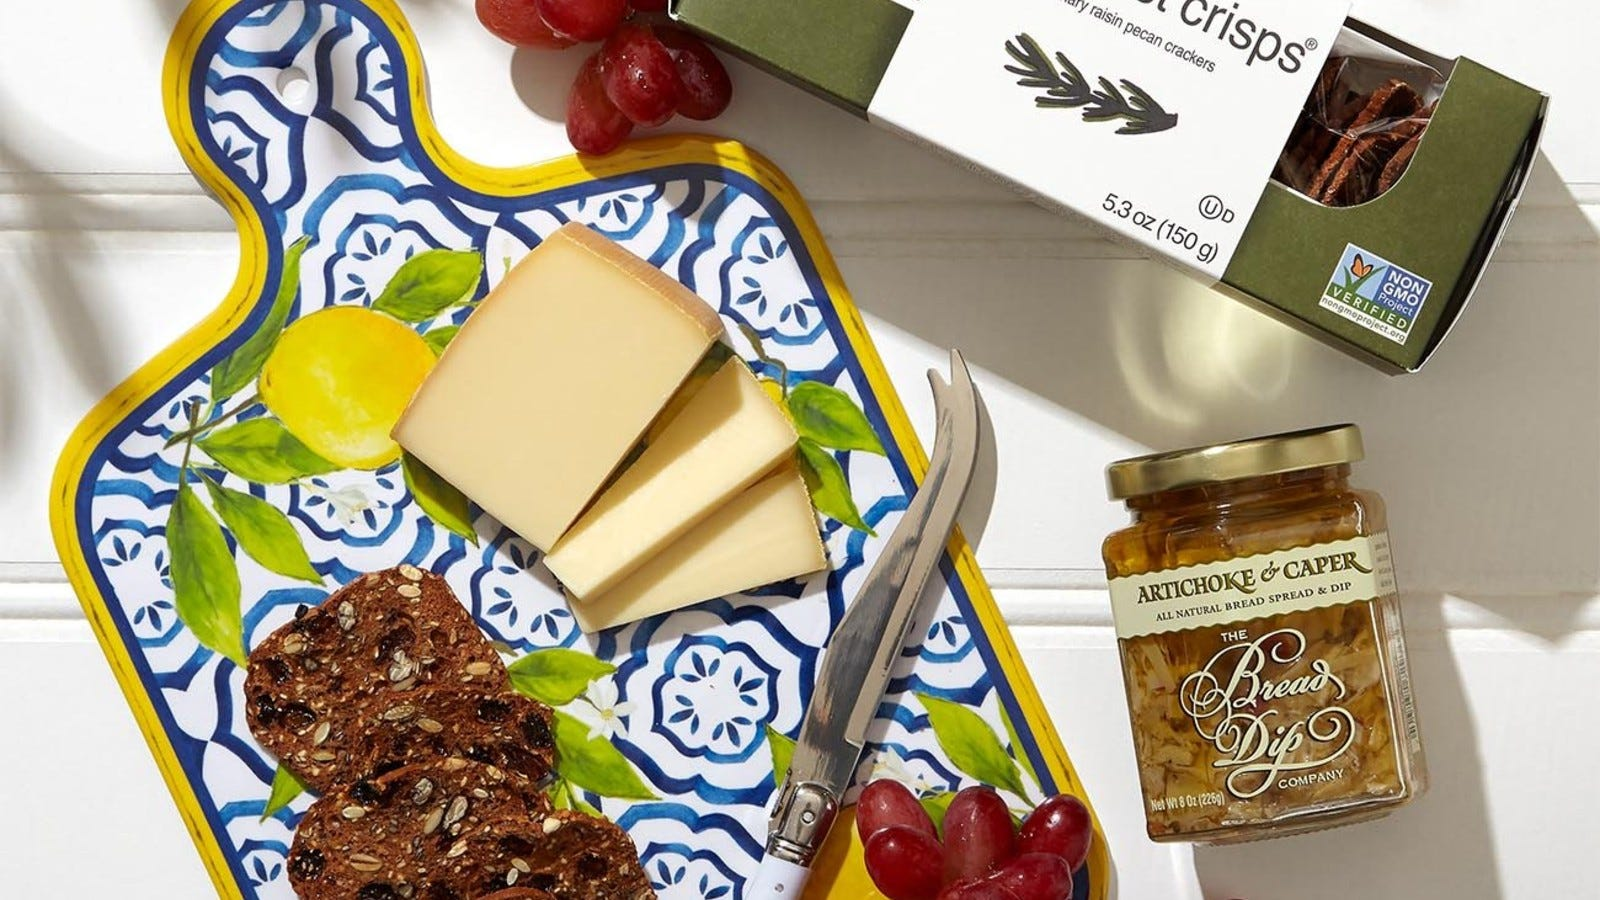 cheeseboard with crackers and cheese and grapes, a box of crackers, a jar of artichoke dip